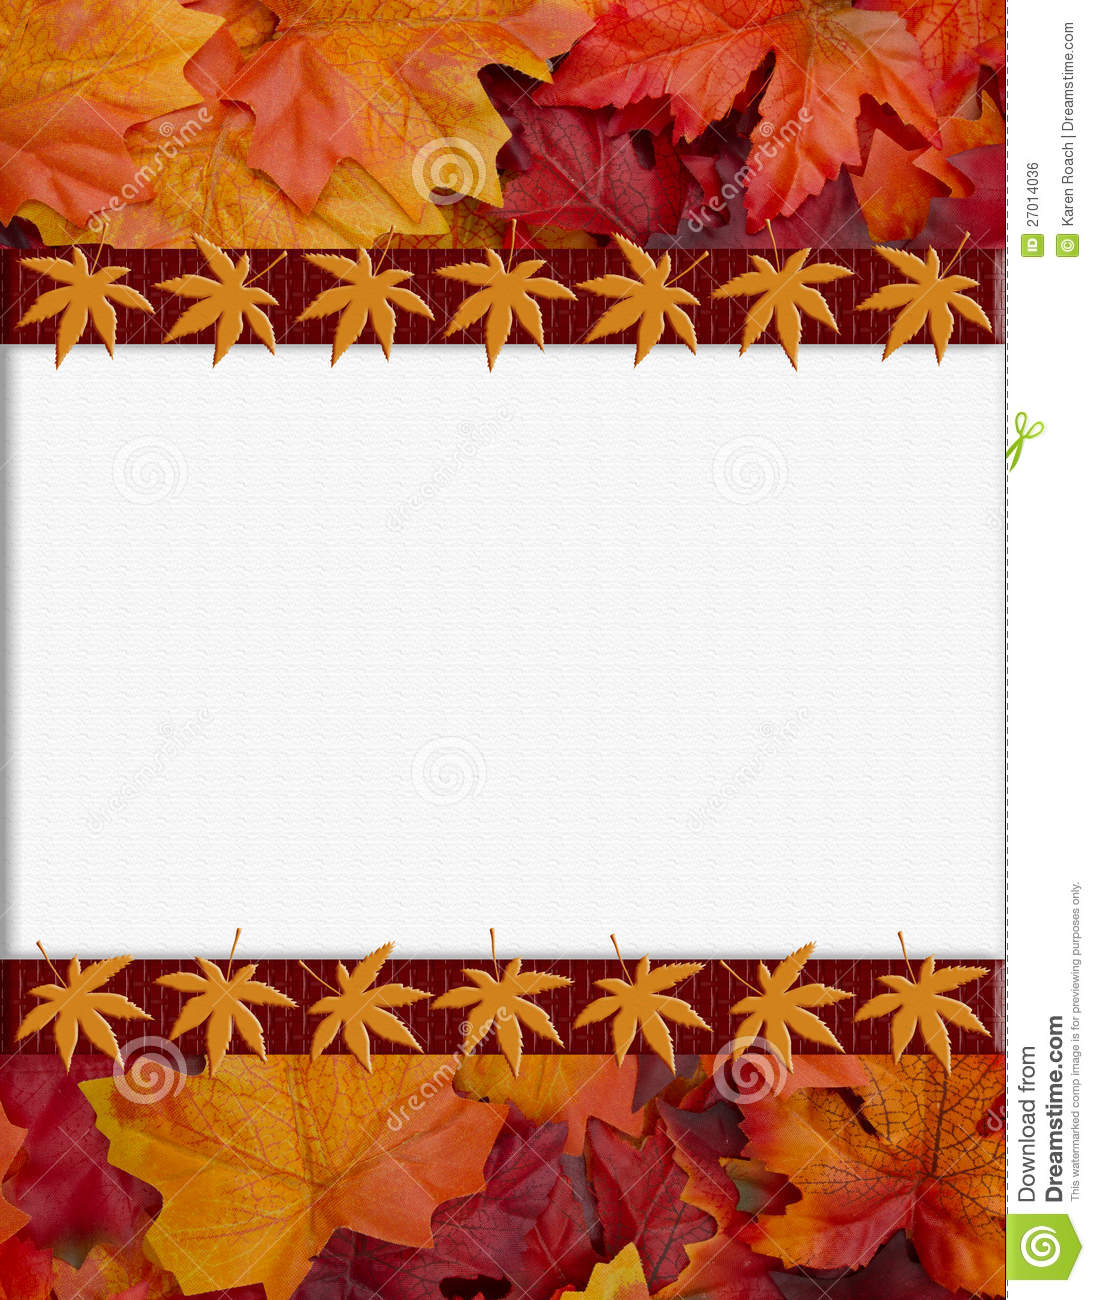 orange fall frame for your message or invitation stock photo image